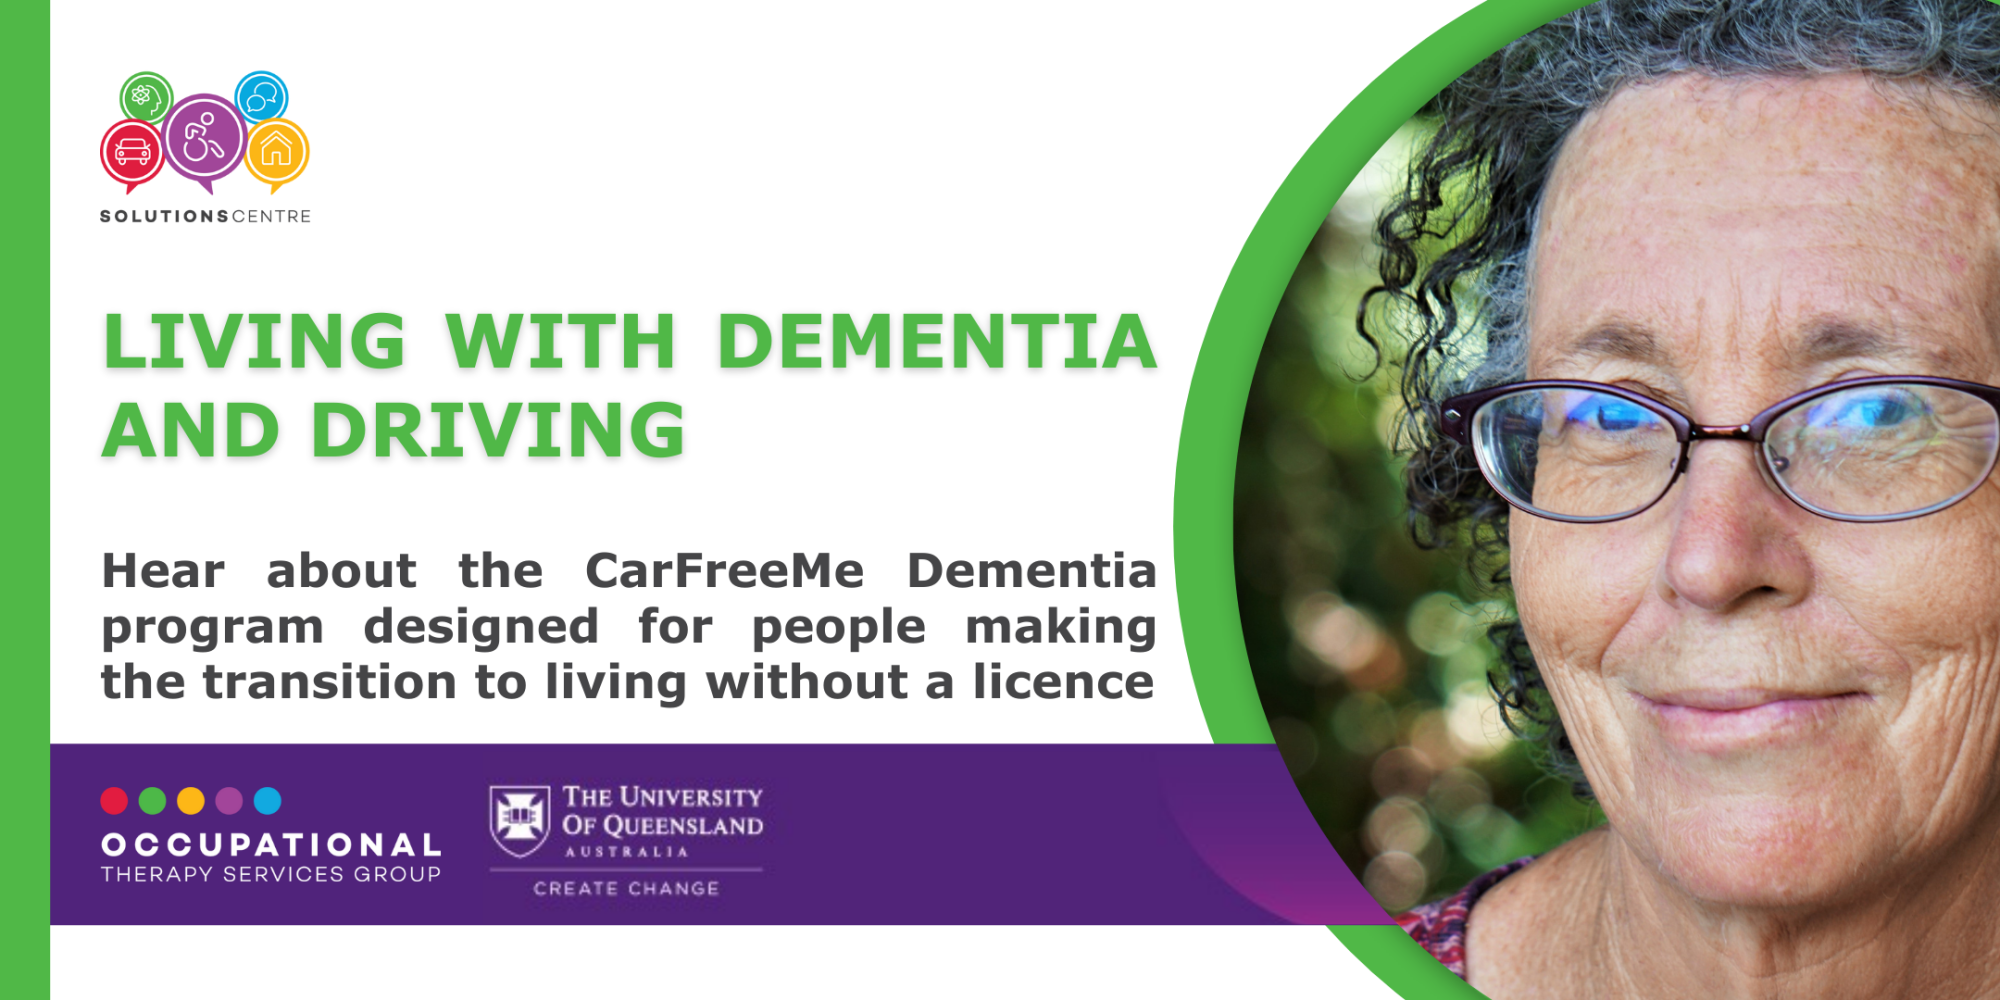 LIVING WITH DEMENTIA AND DRIVING STUDY